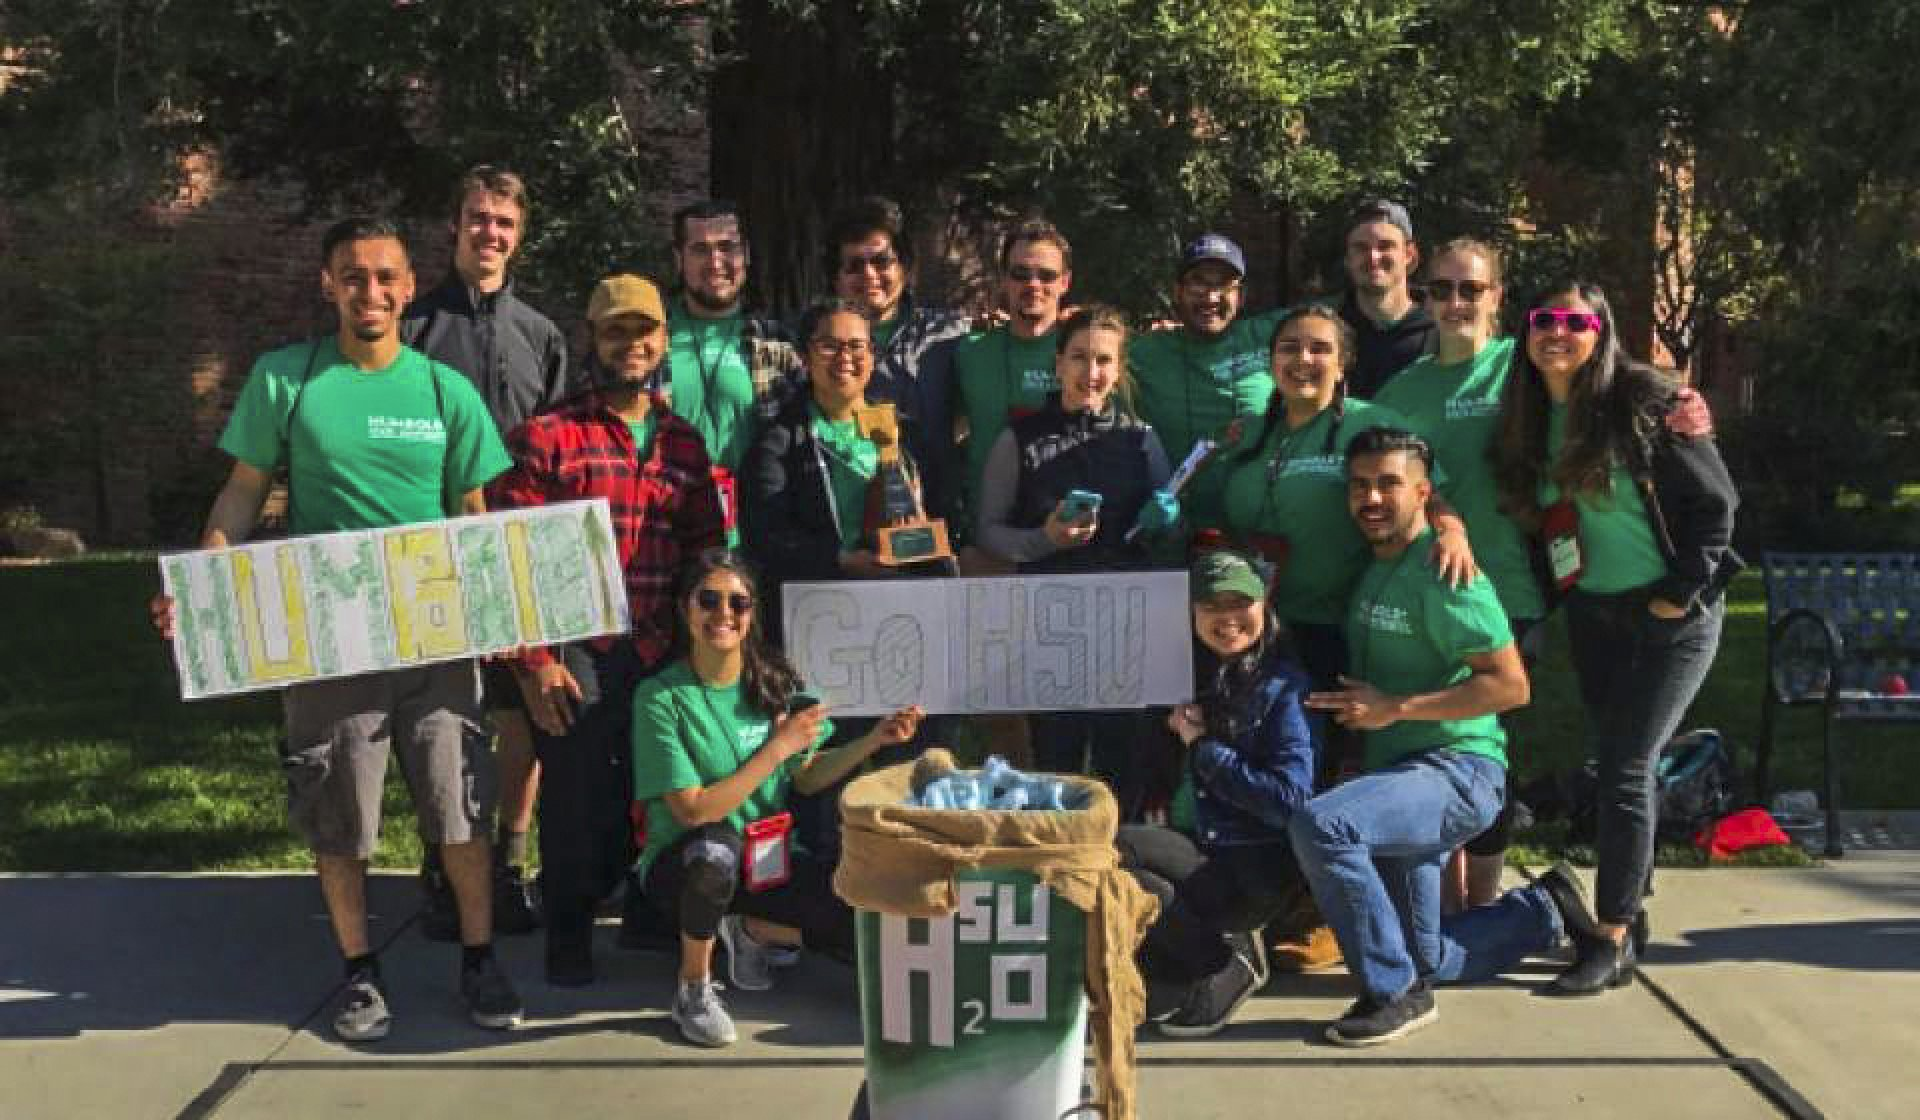 A team of Environmental Engineering students created a water filtration system that would be able to make a given sample of water drinkable again. This team of engineers received first place in multiple categories. PC: Environmental Resources Engineering Department